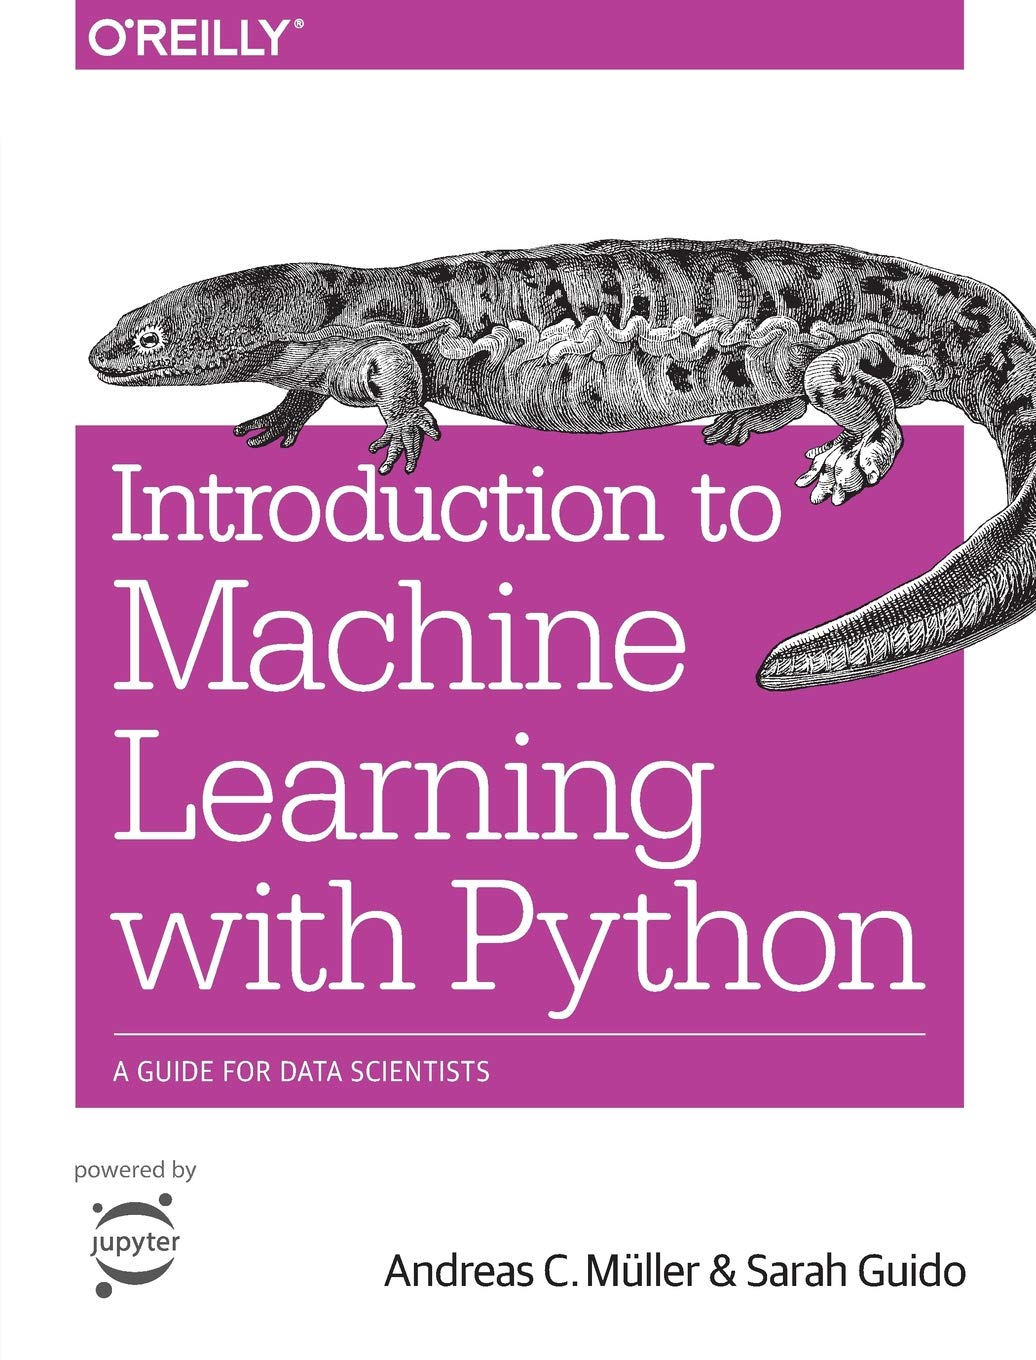 Introduction to Machine Learning with Python: A Guide for Data Scientists by O'Reilly Media